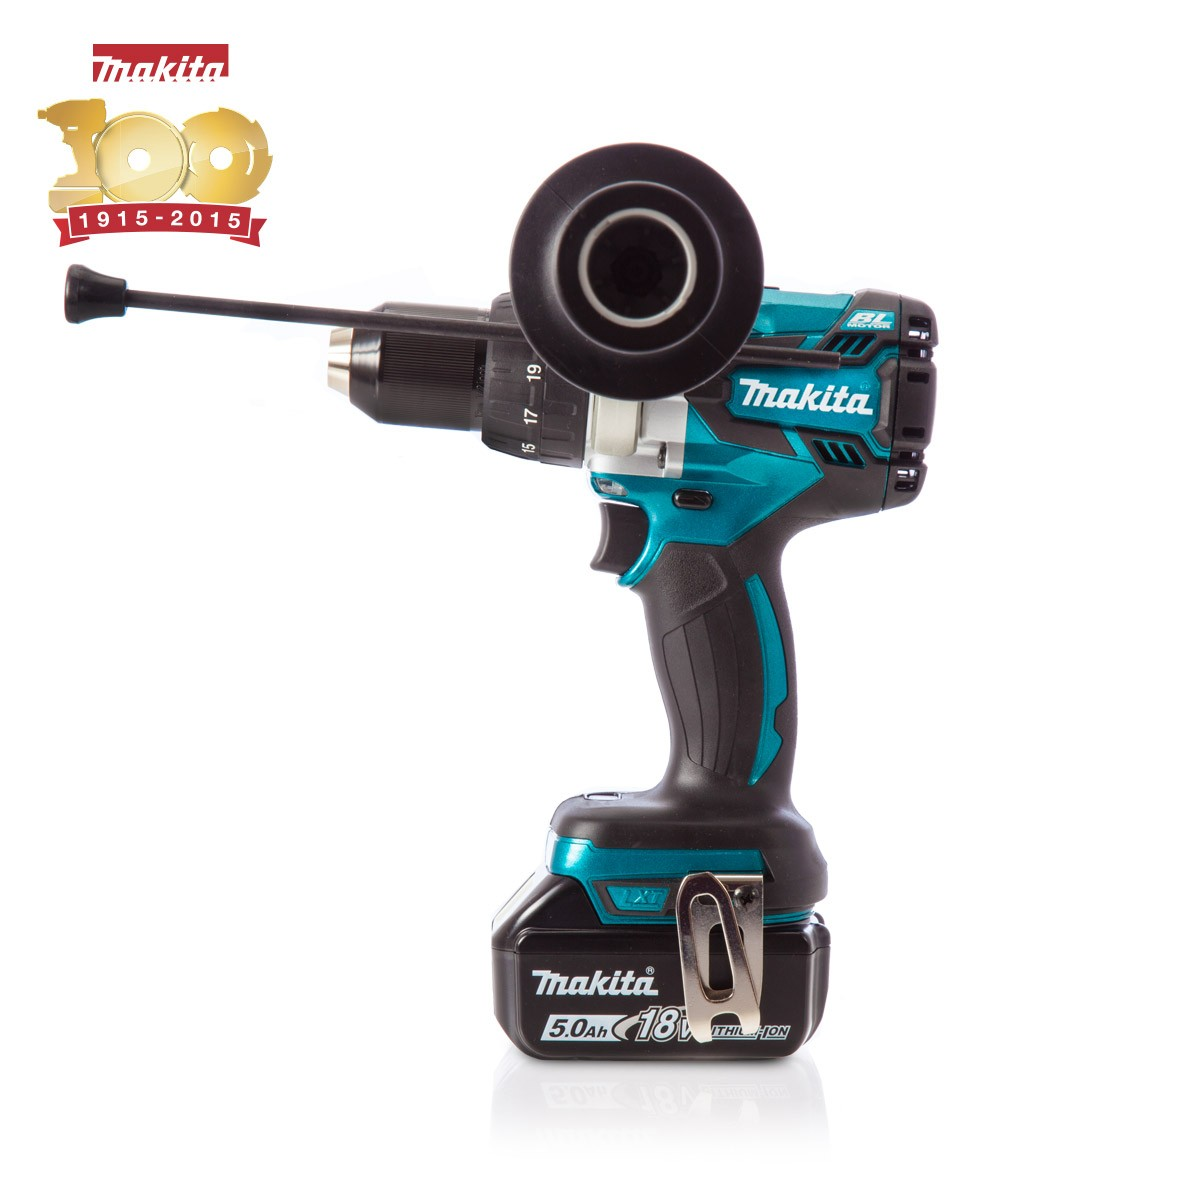 makita power tools catalogue 2015 pdf